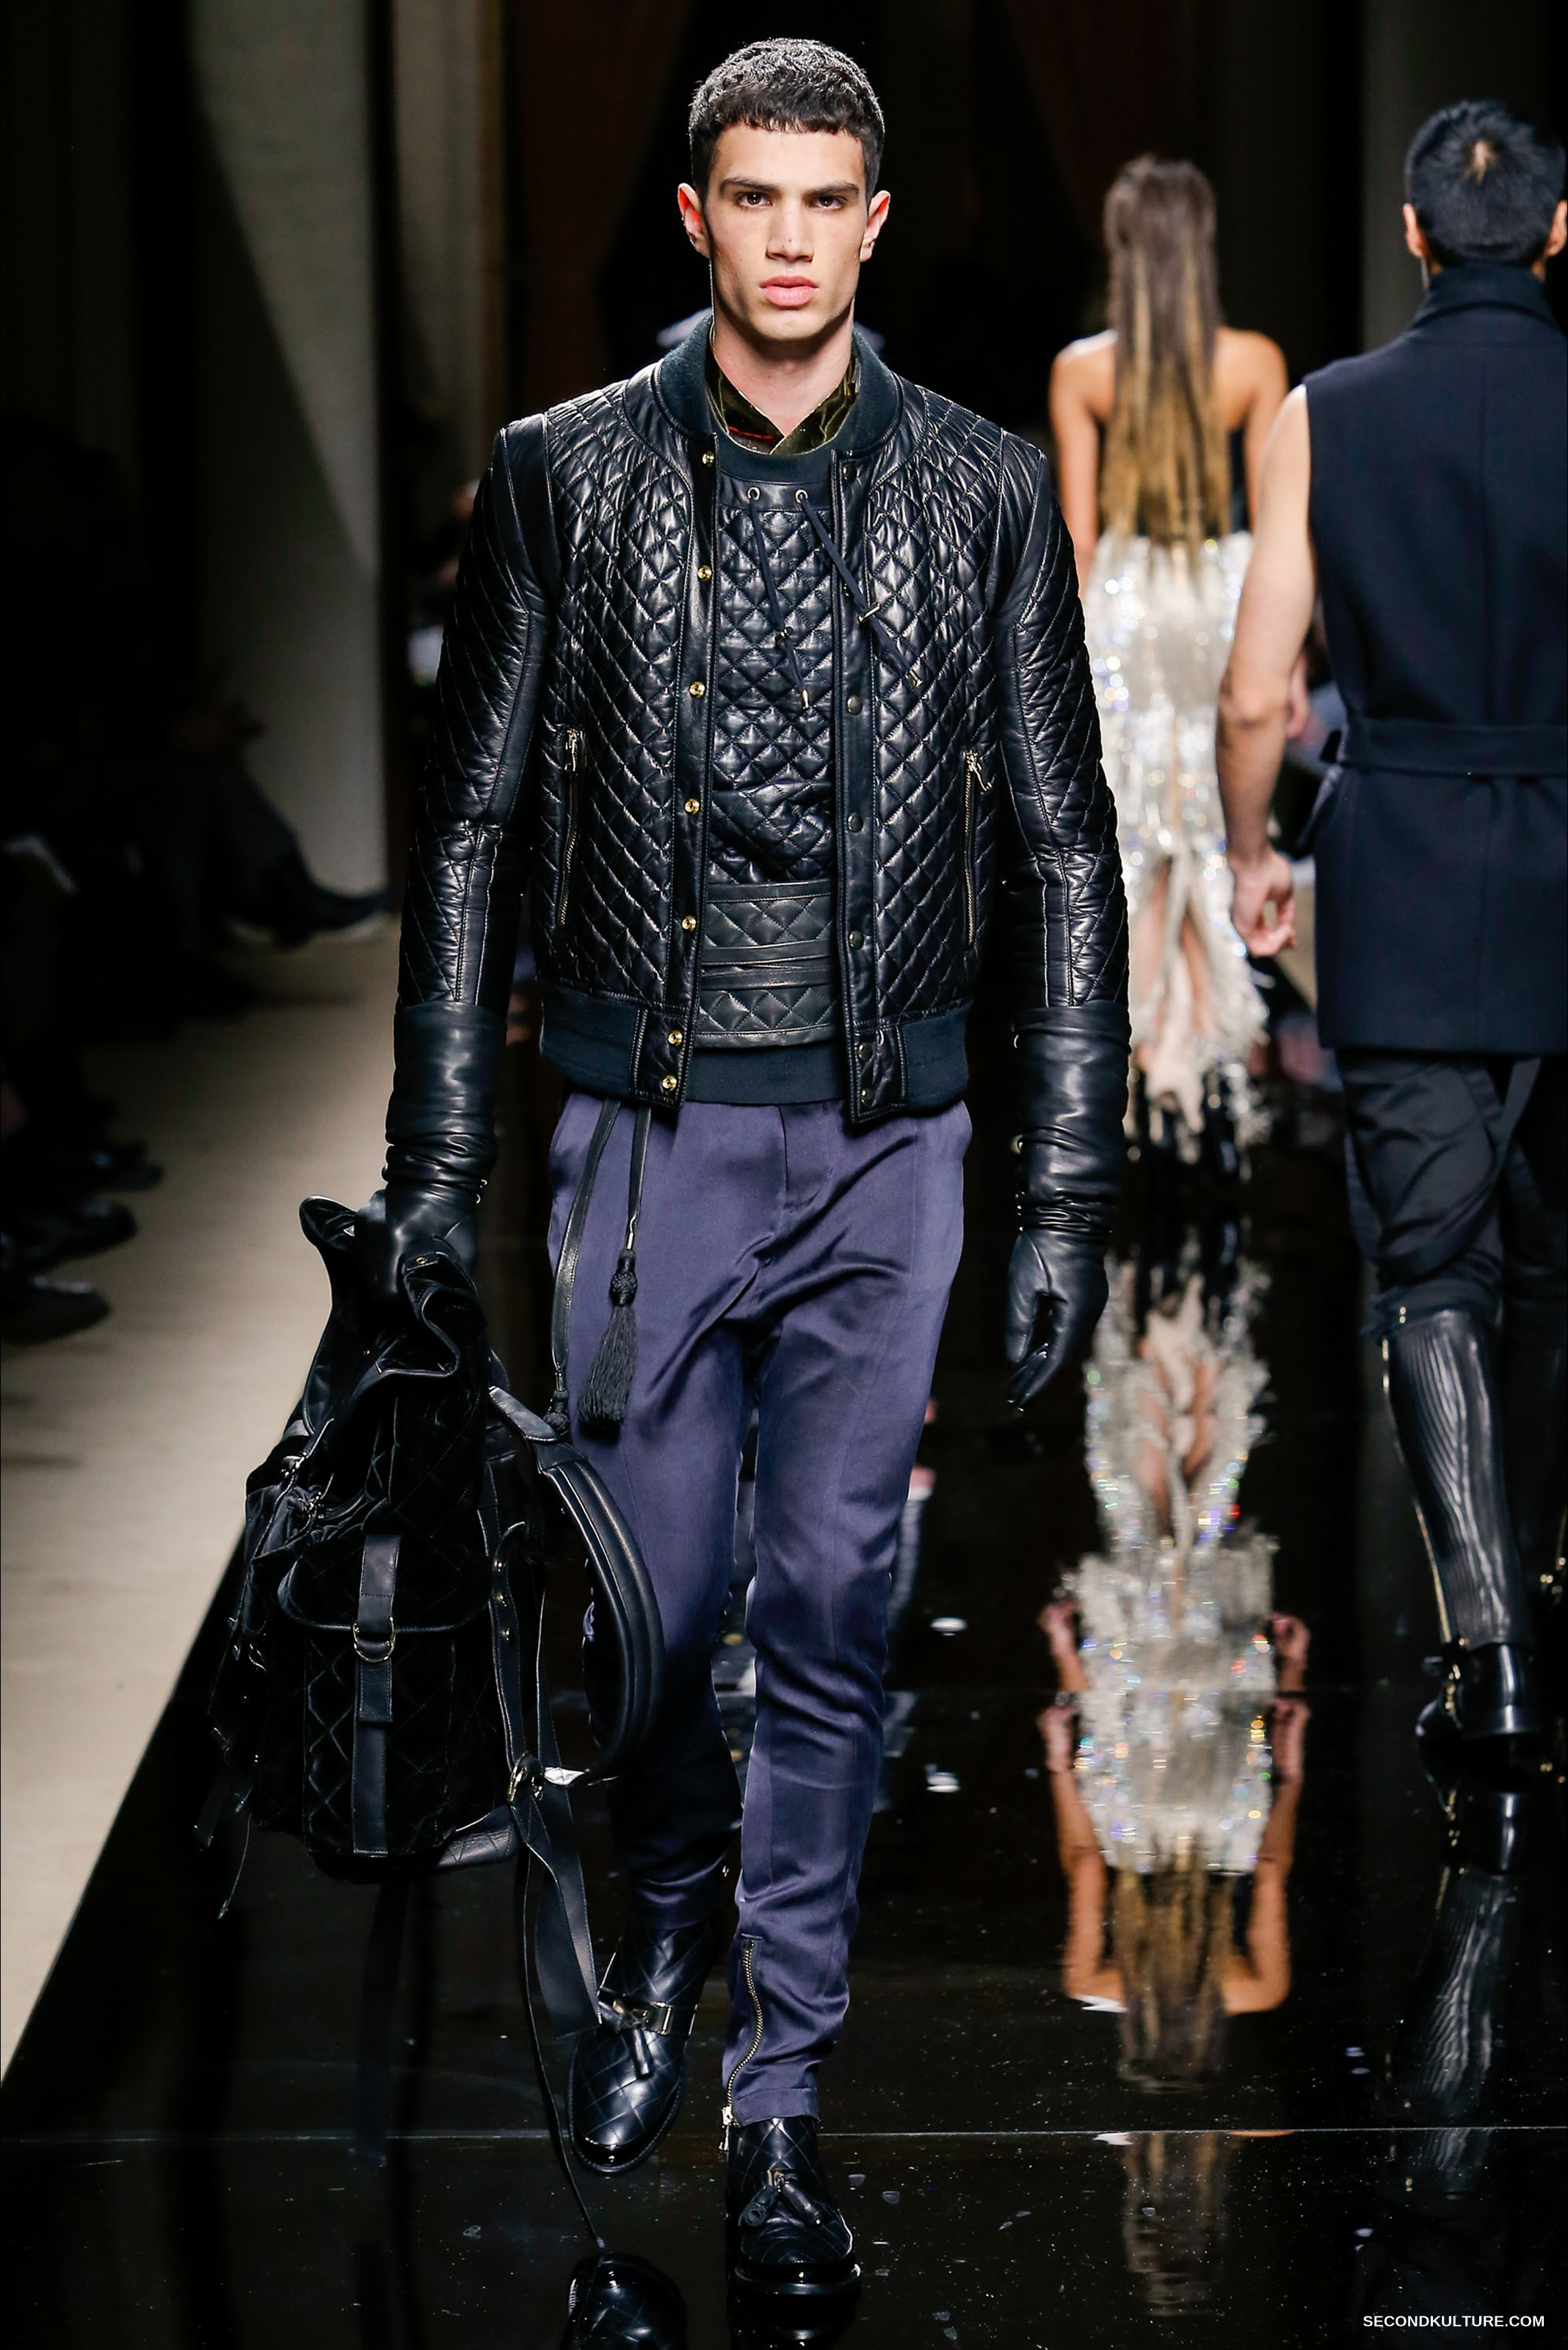 Balmain Fall Winter 2016 Menswear - Look 47/63